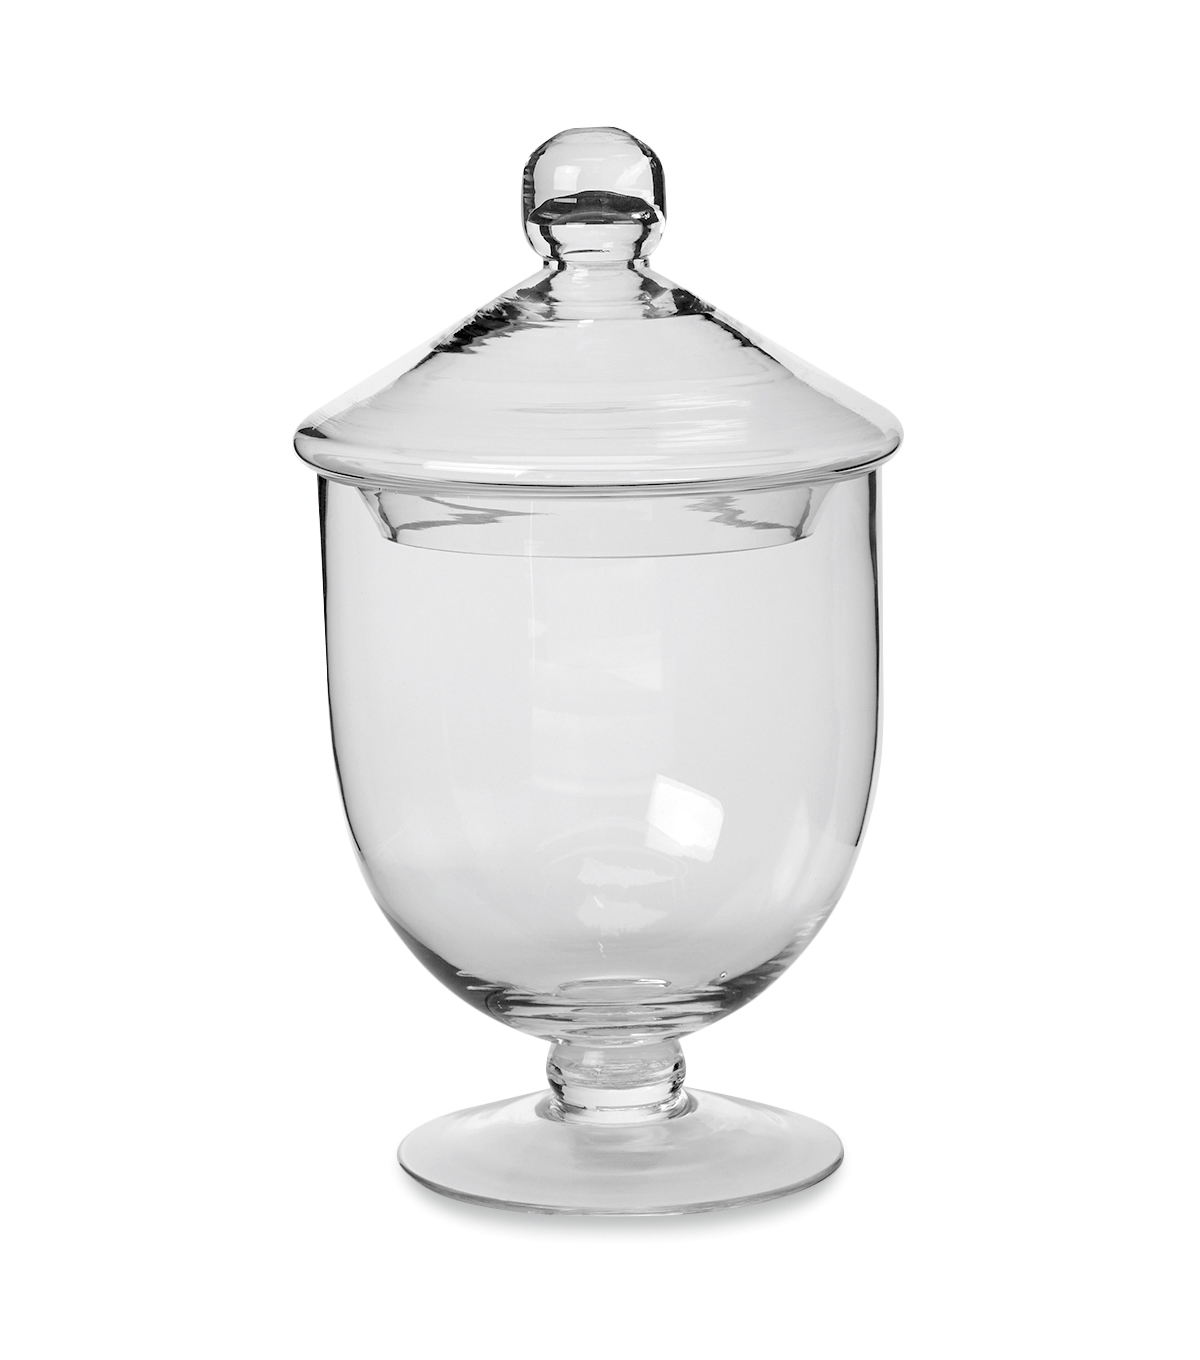 Bloom Room Apothecary Jar-418128